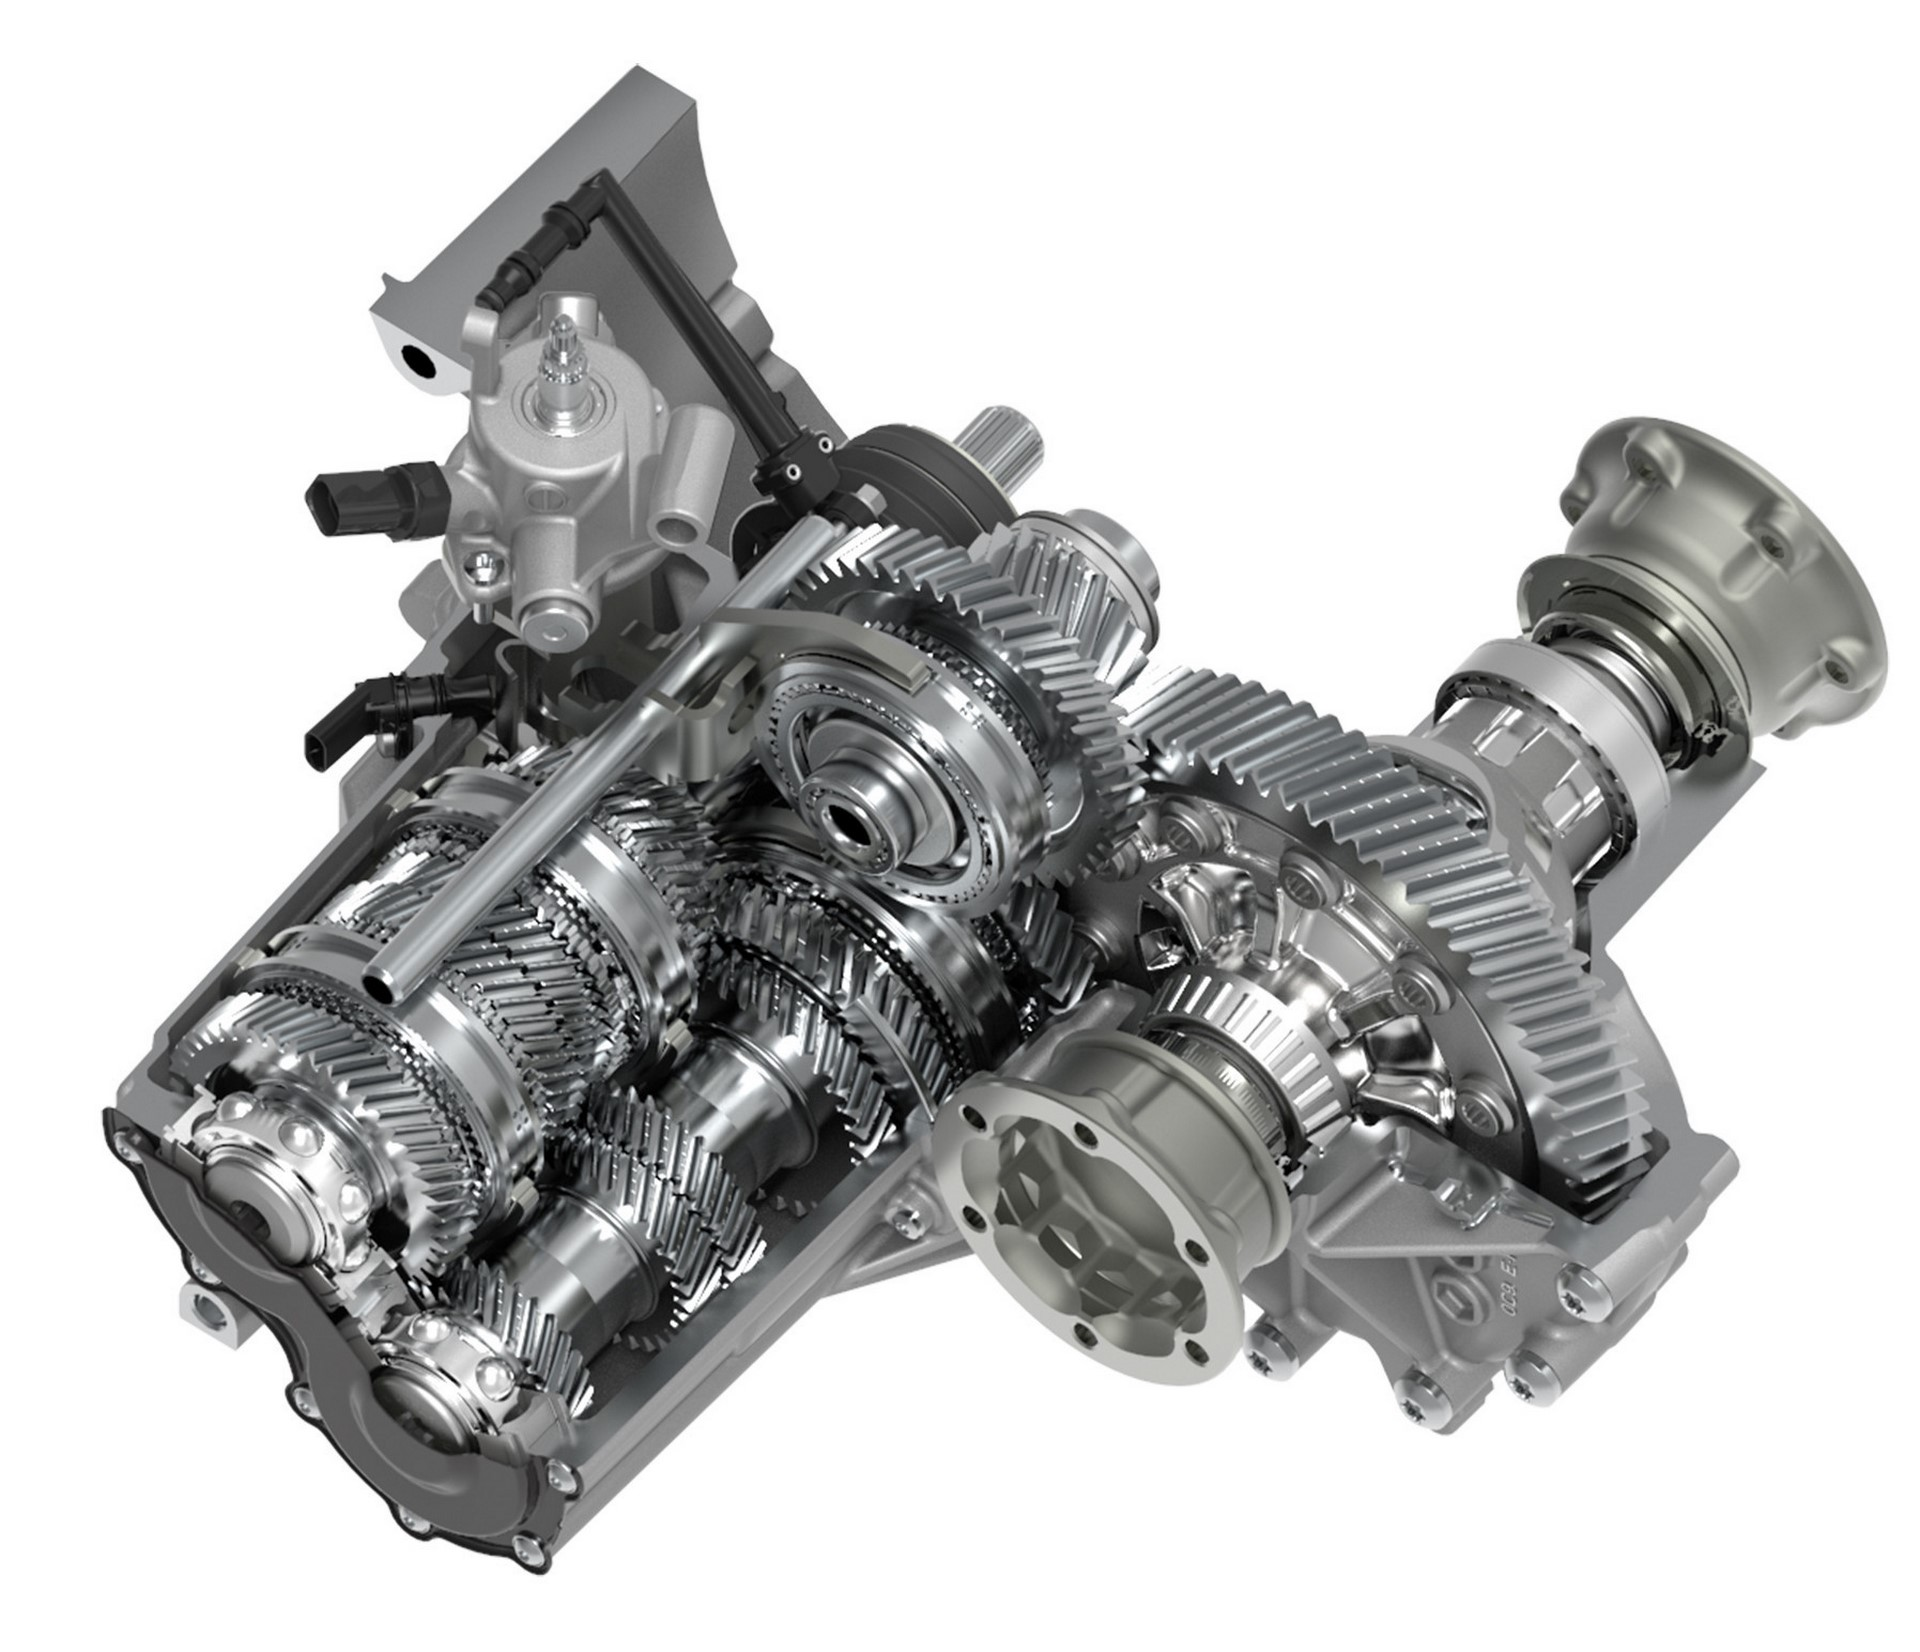 New gearbox generation enables CO2 savings of up to five grammes per kilometre